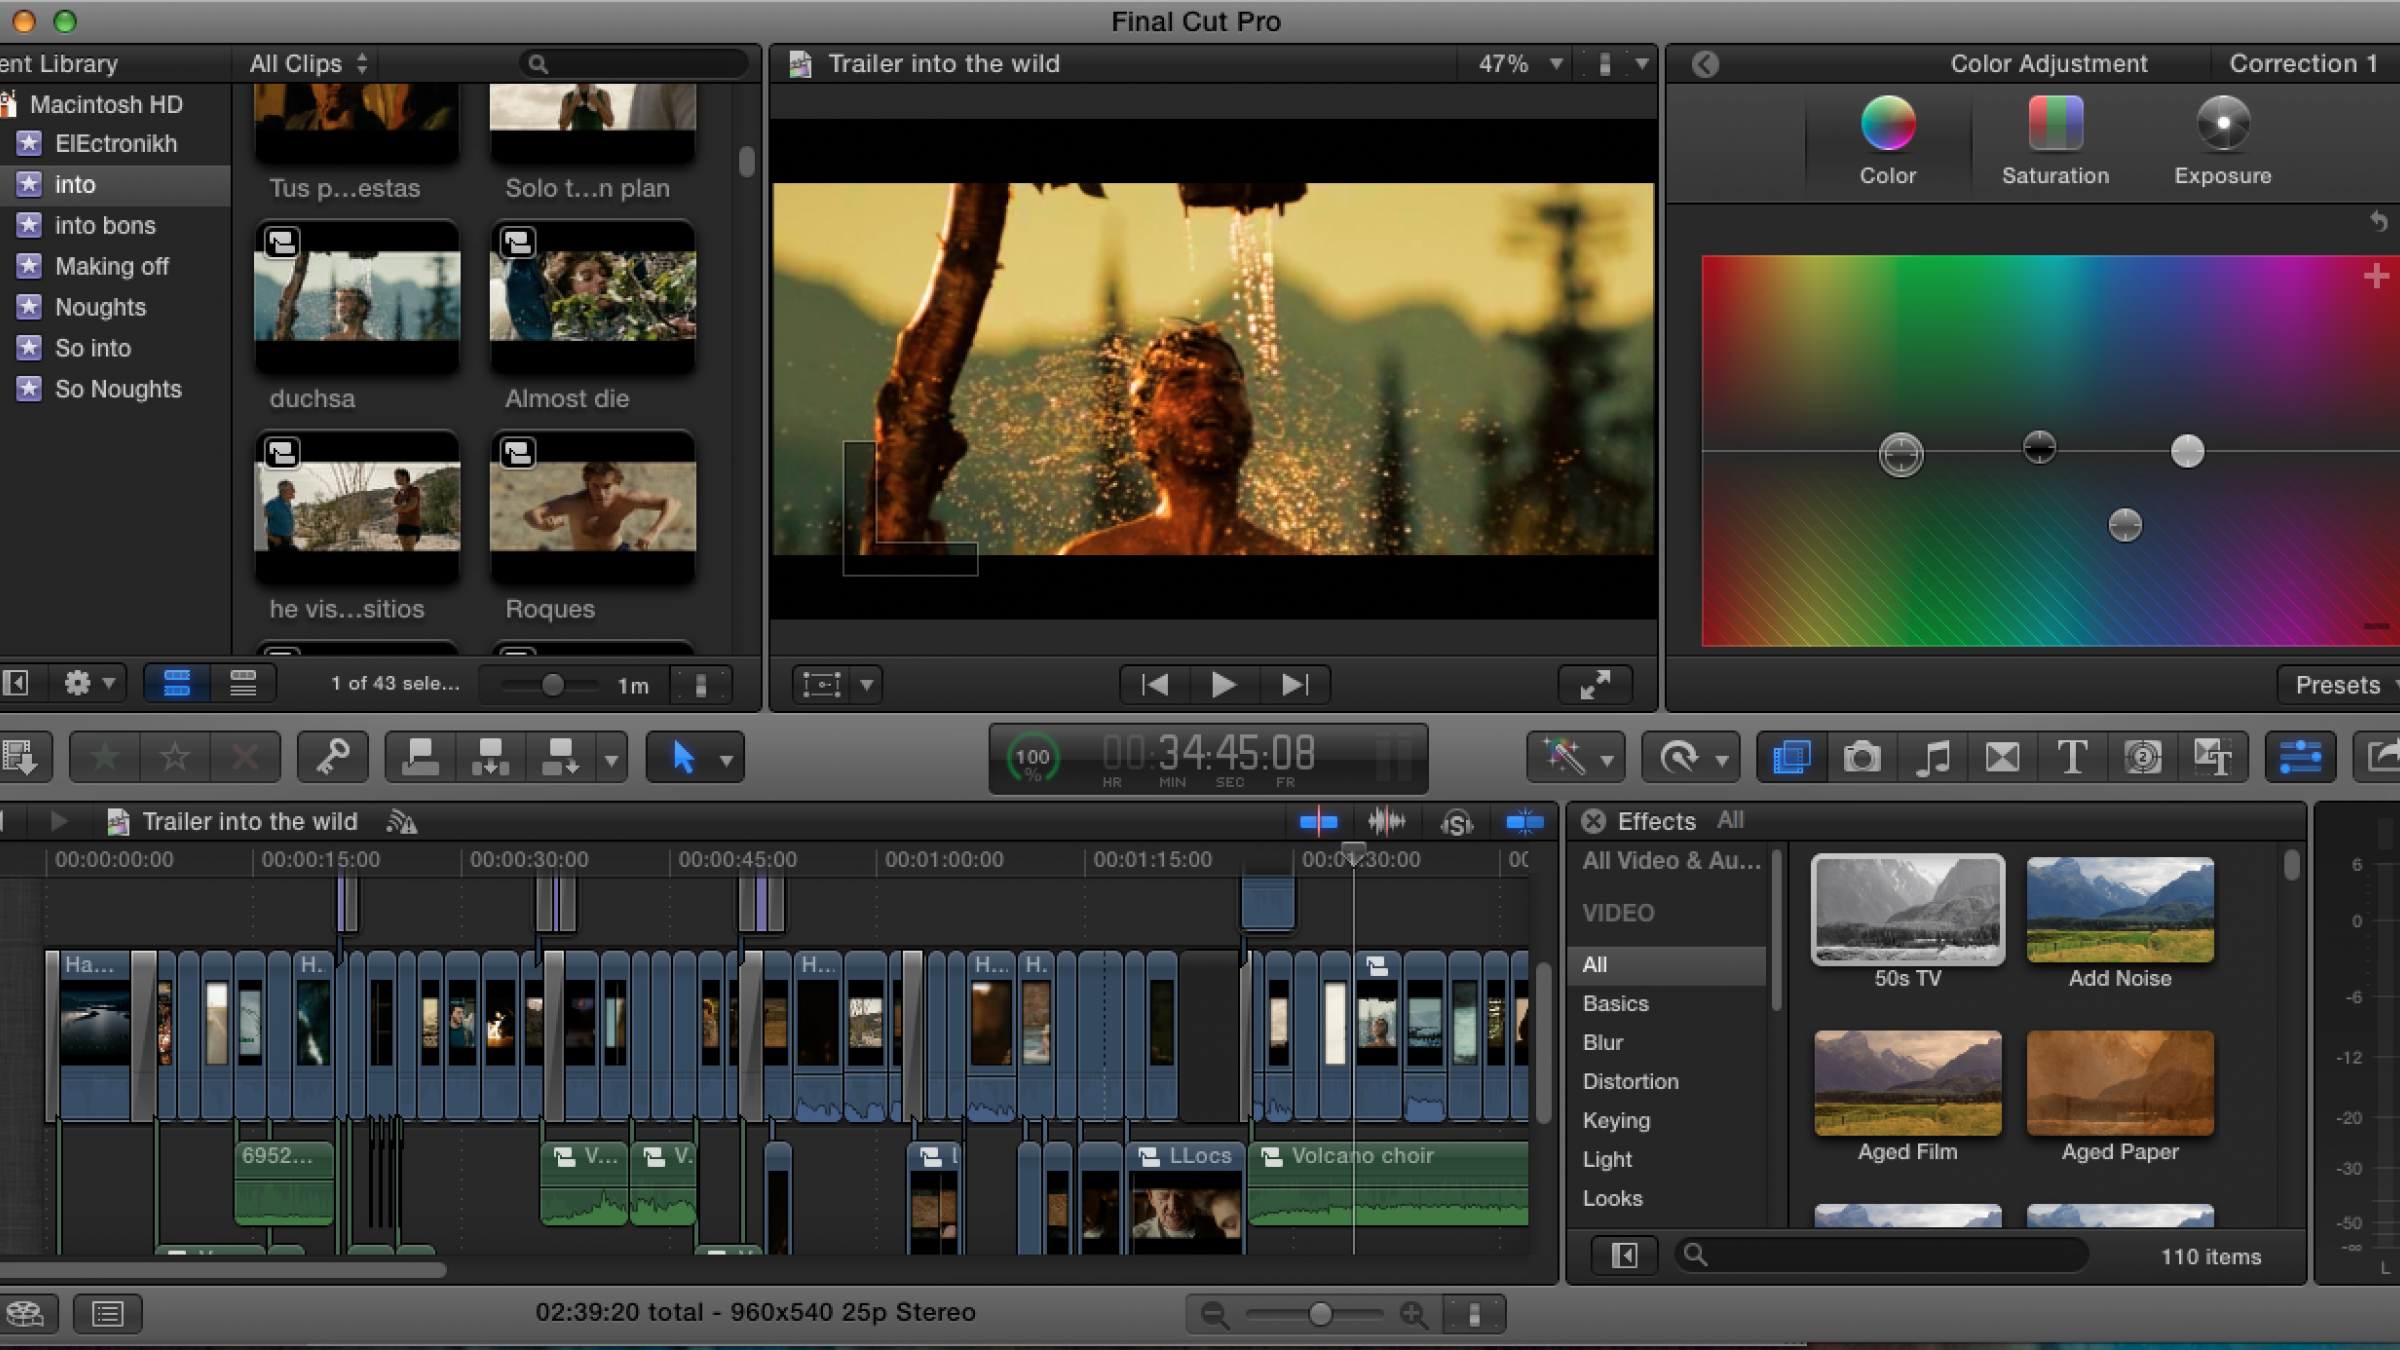 final cut pro free download full version